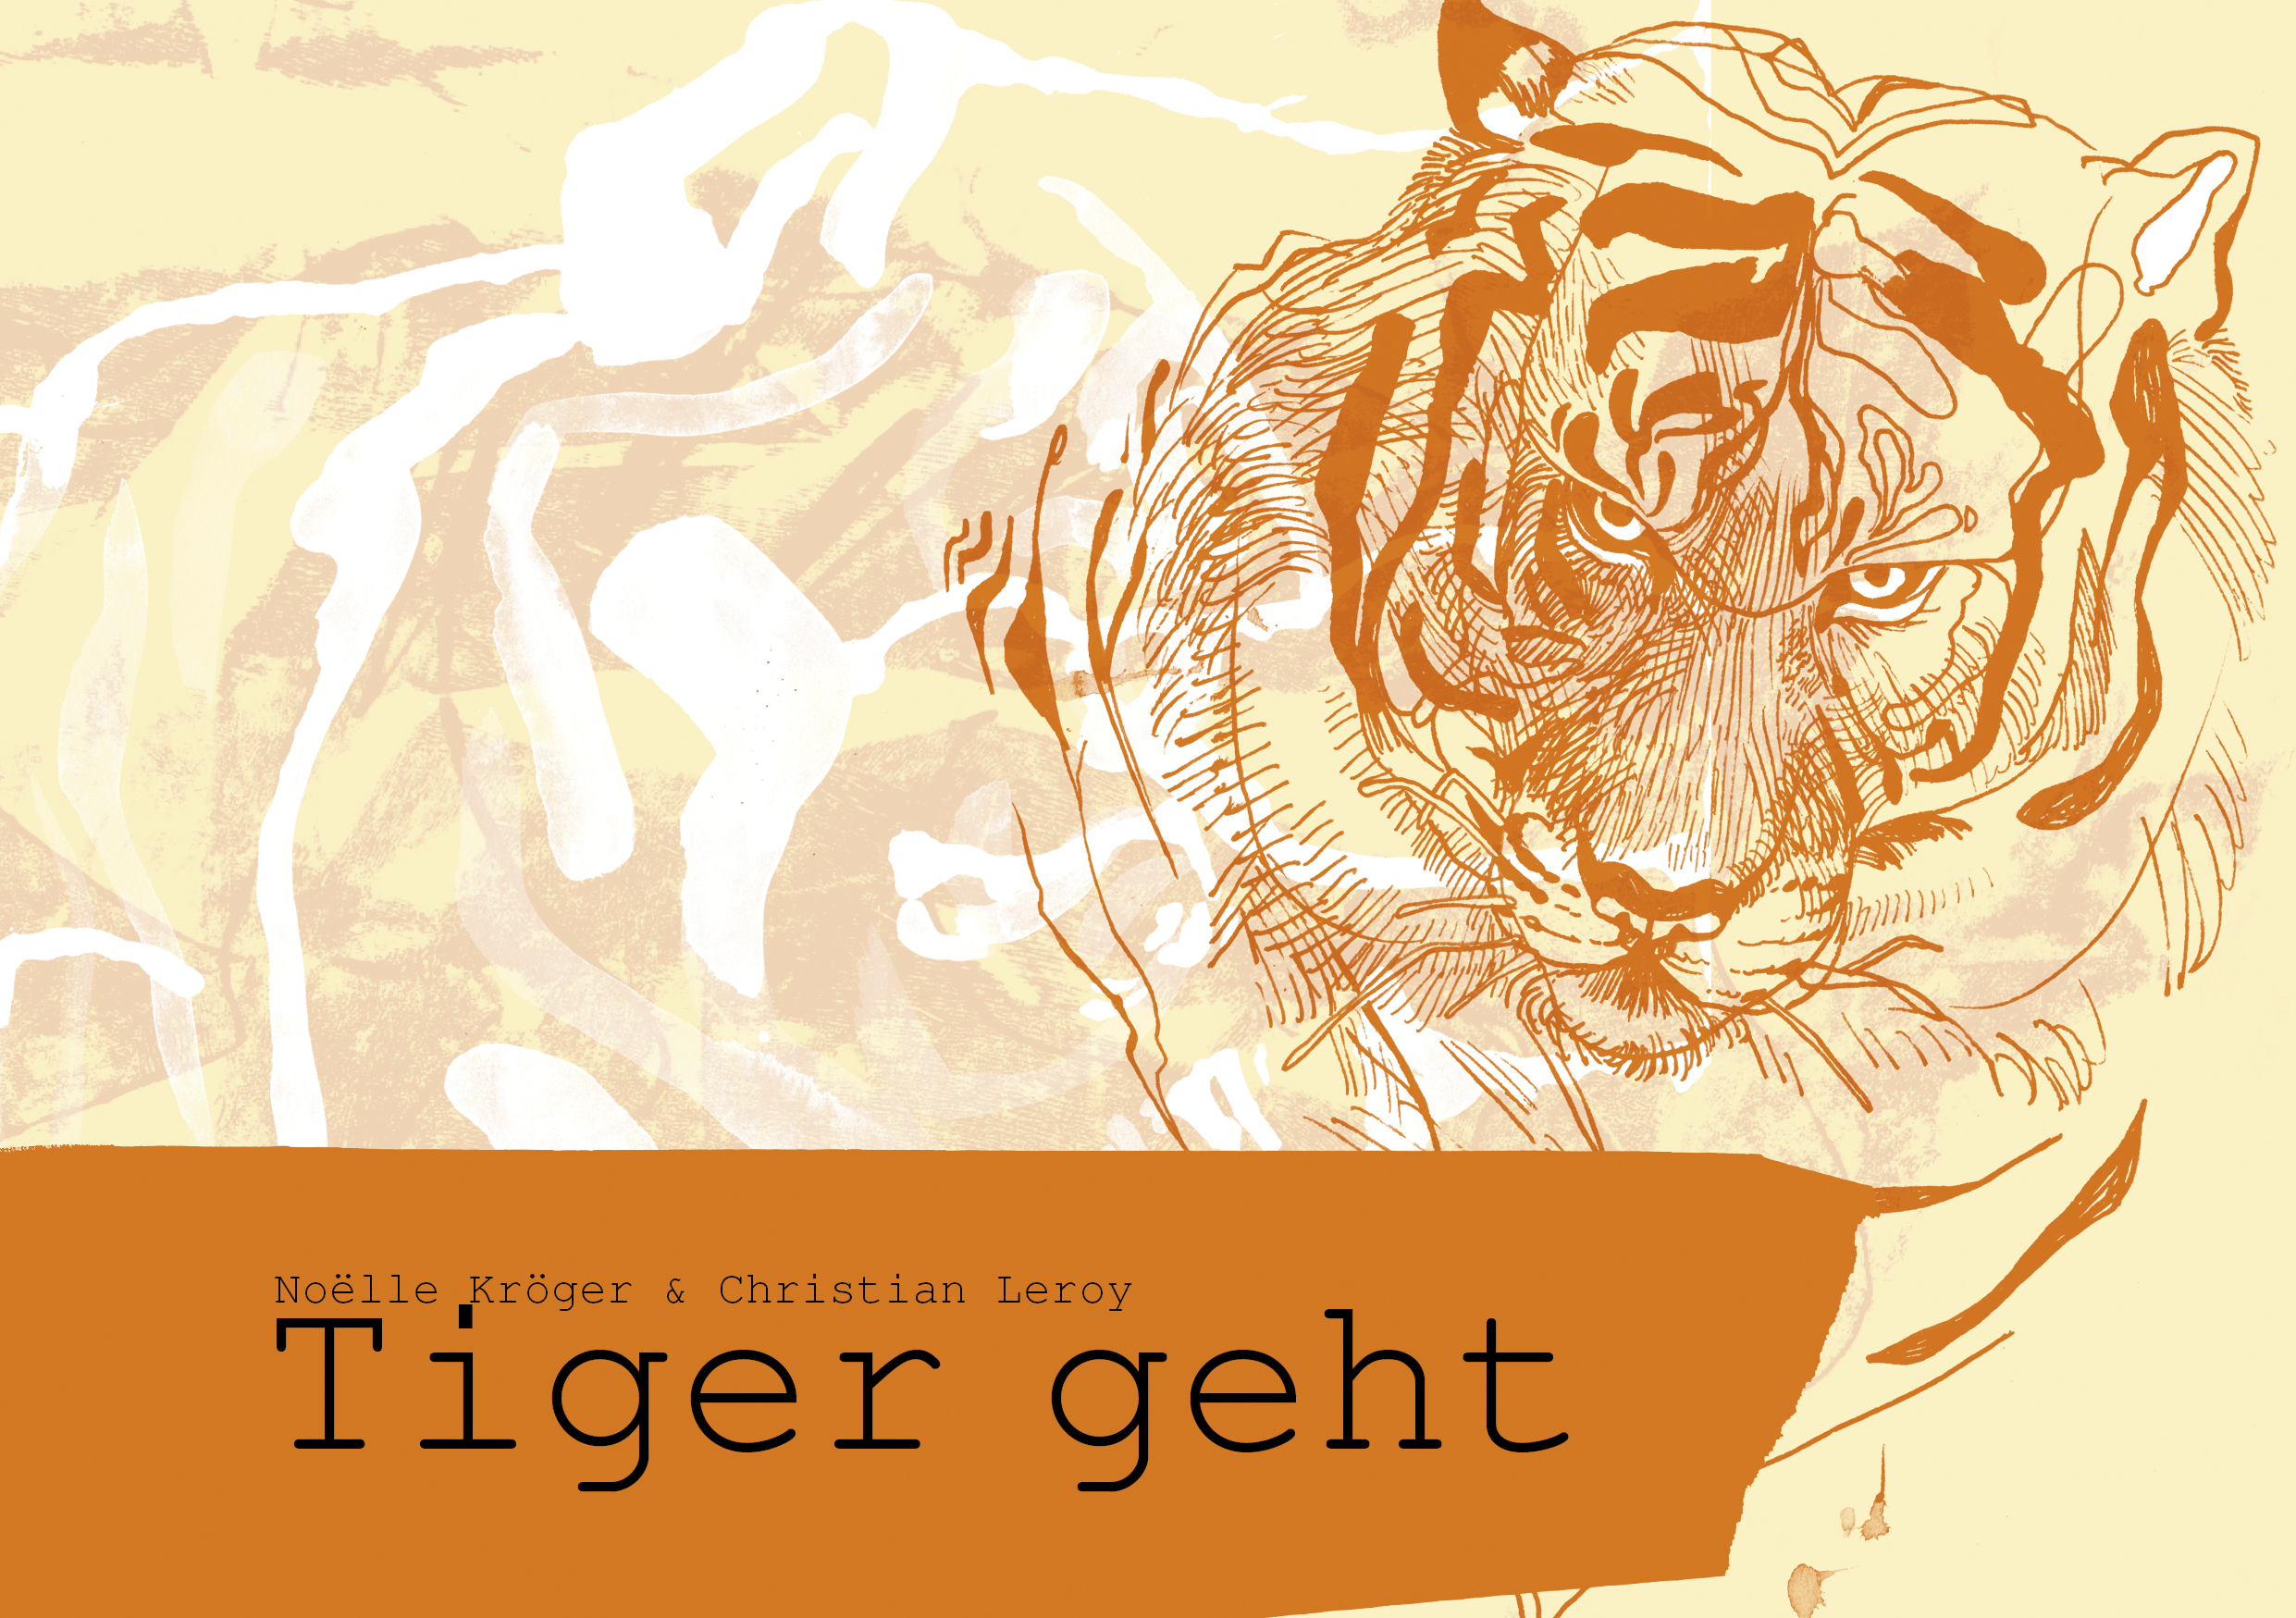 Cover design: Tiger geht 2019, ink on paper